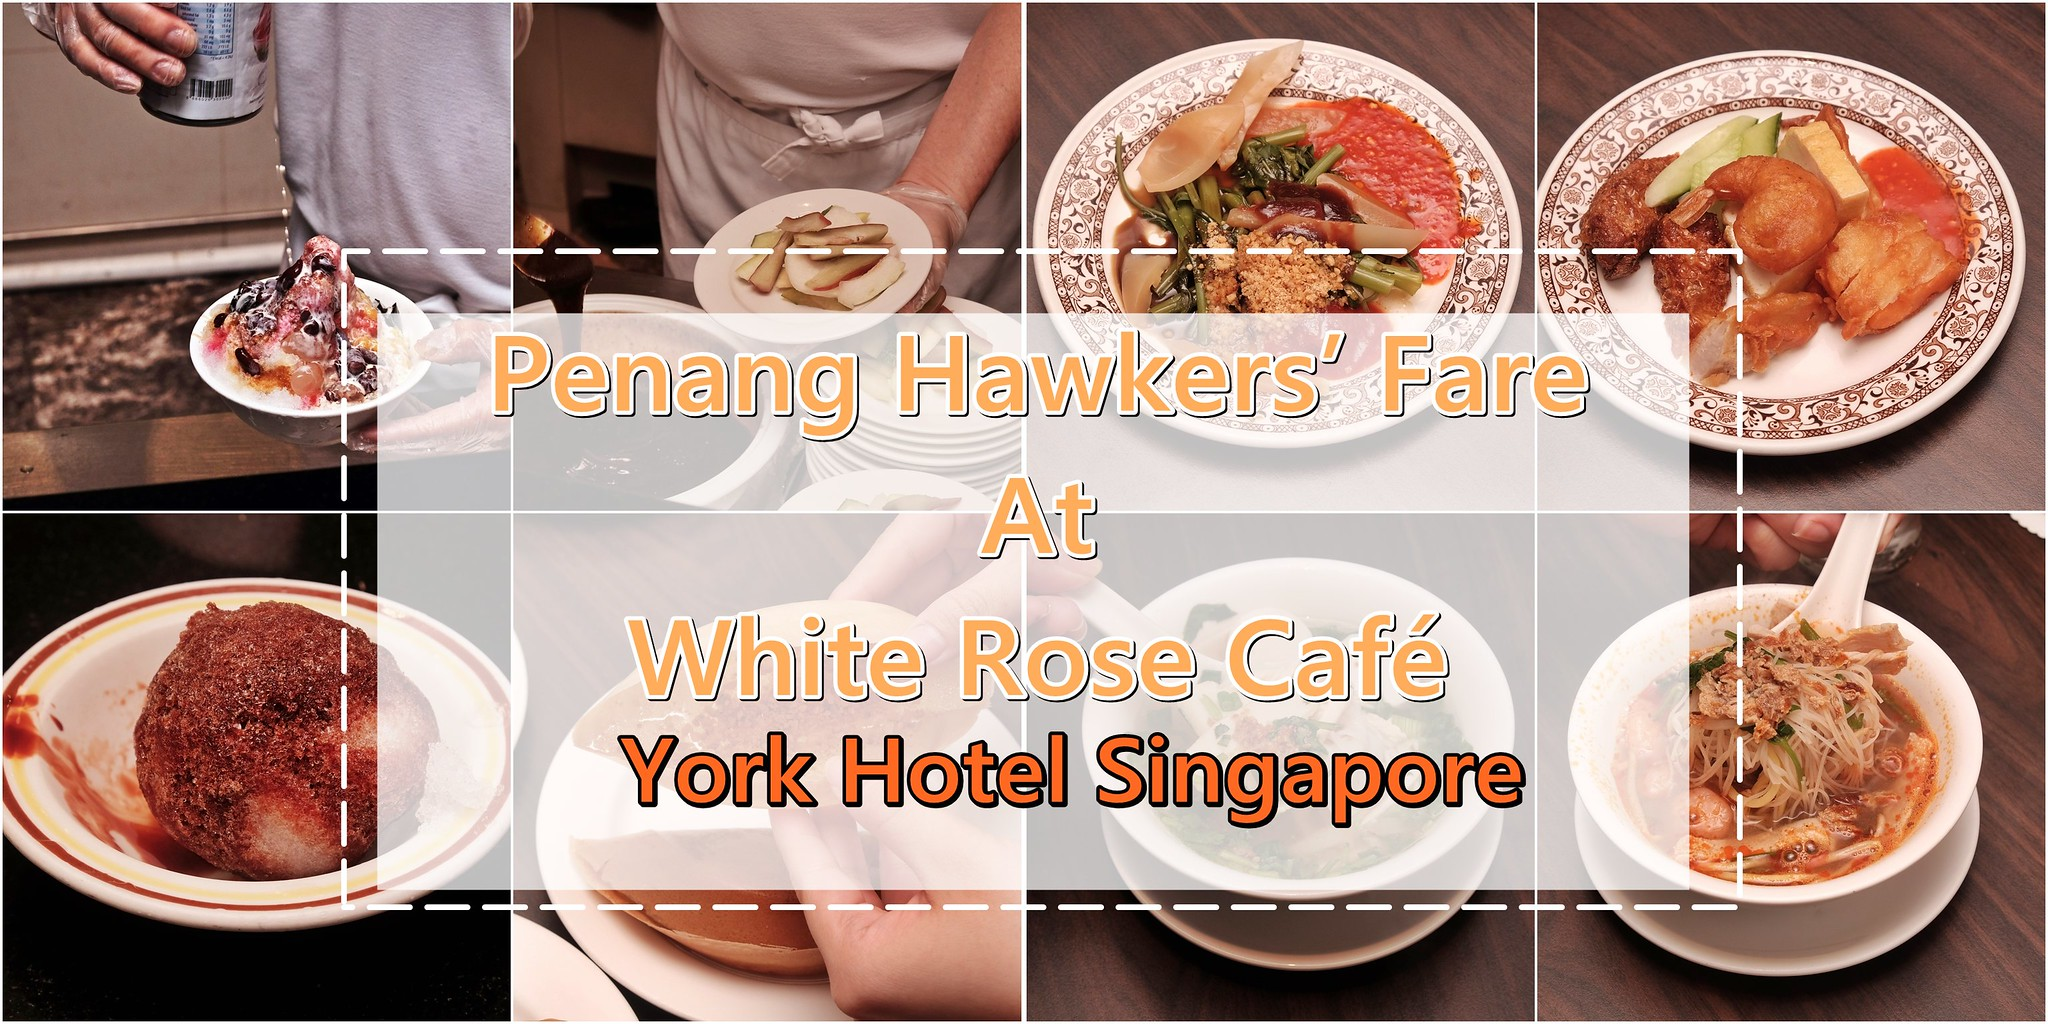 [SG EATS] Penang Hawkers' Fare Is Back At White Rose Café | York Hotel Singapore